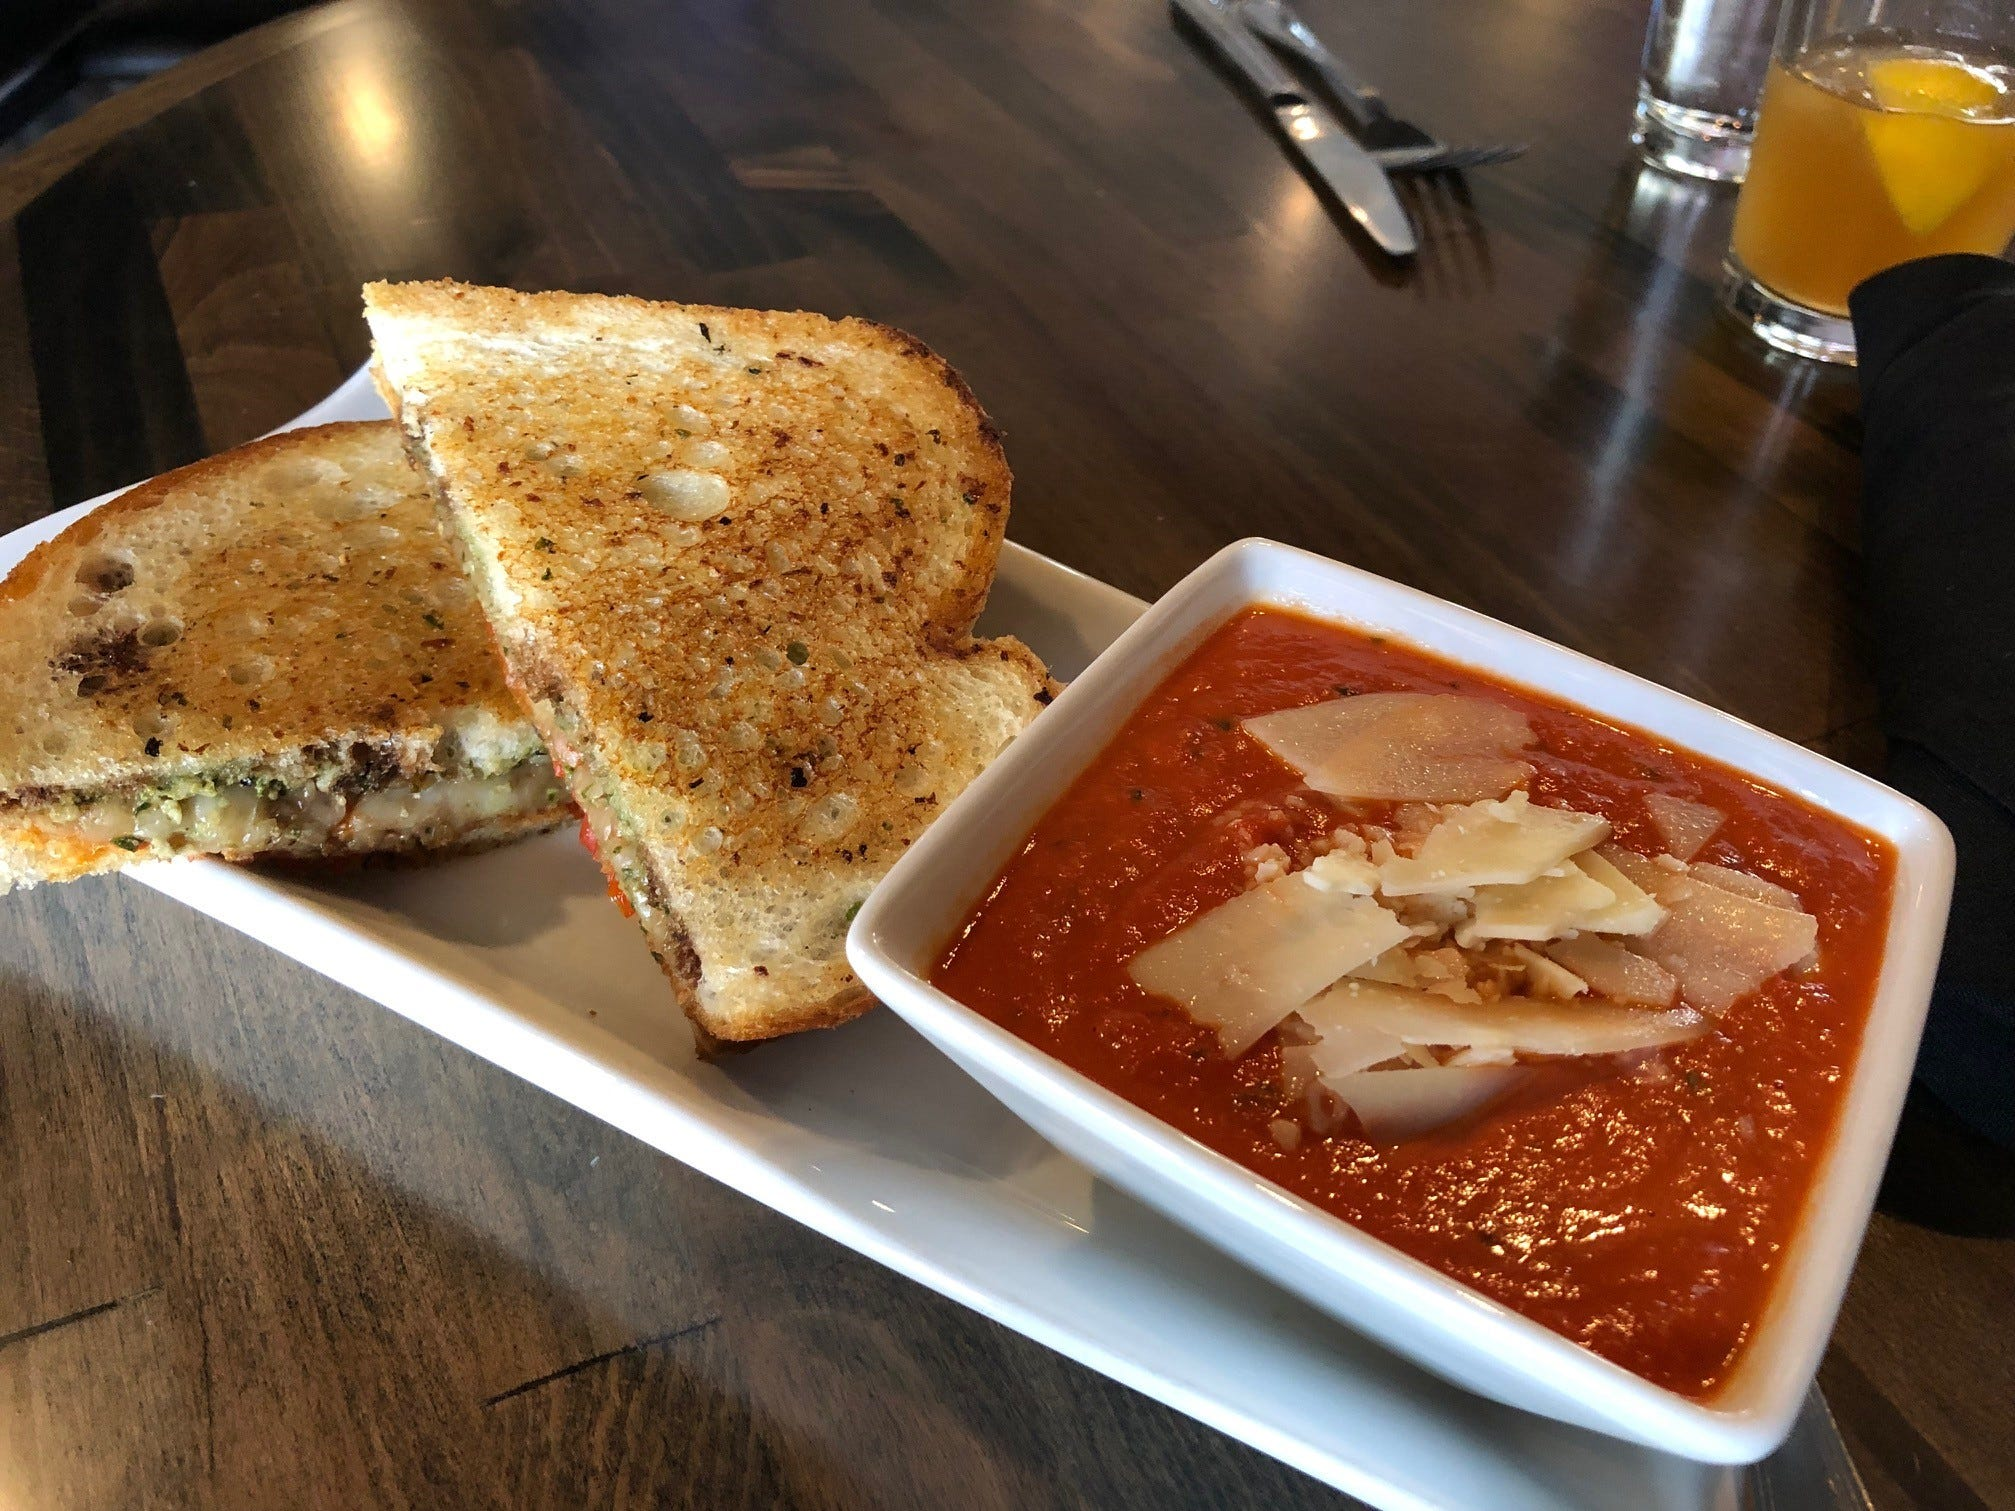 A caprese sandwich with tomato basil soup is one of the grilled cheese lunch specials during the month of February at Vintage Public House.